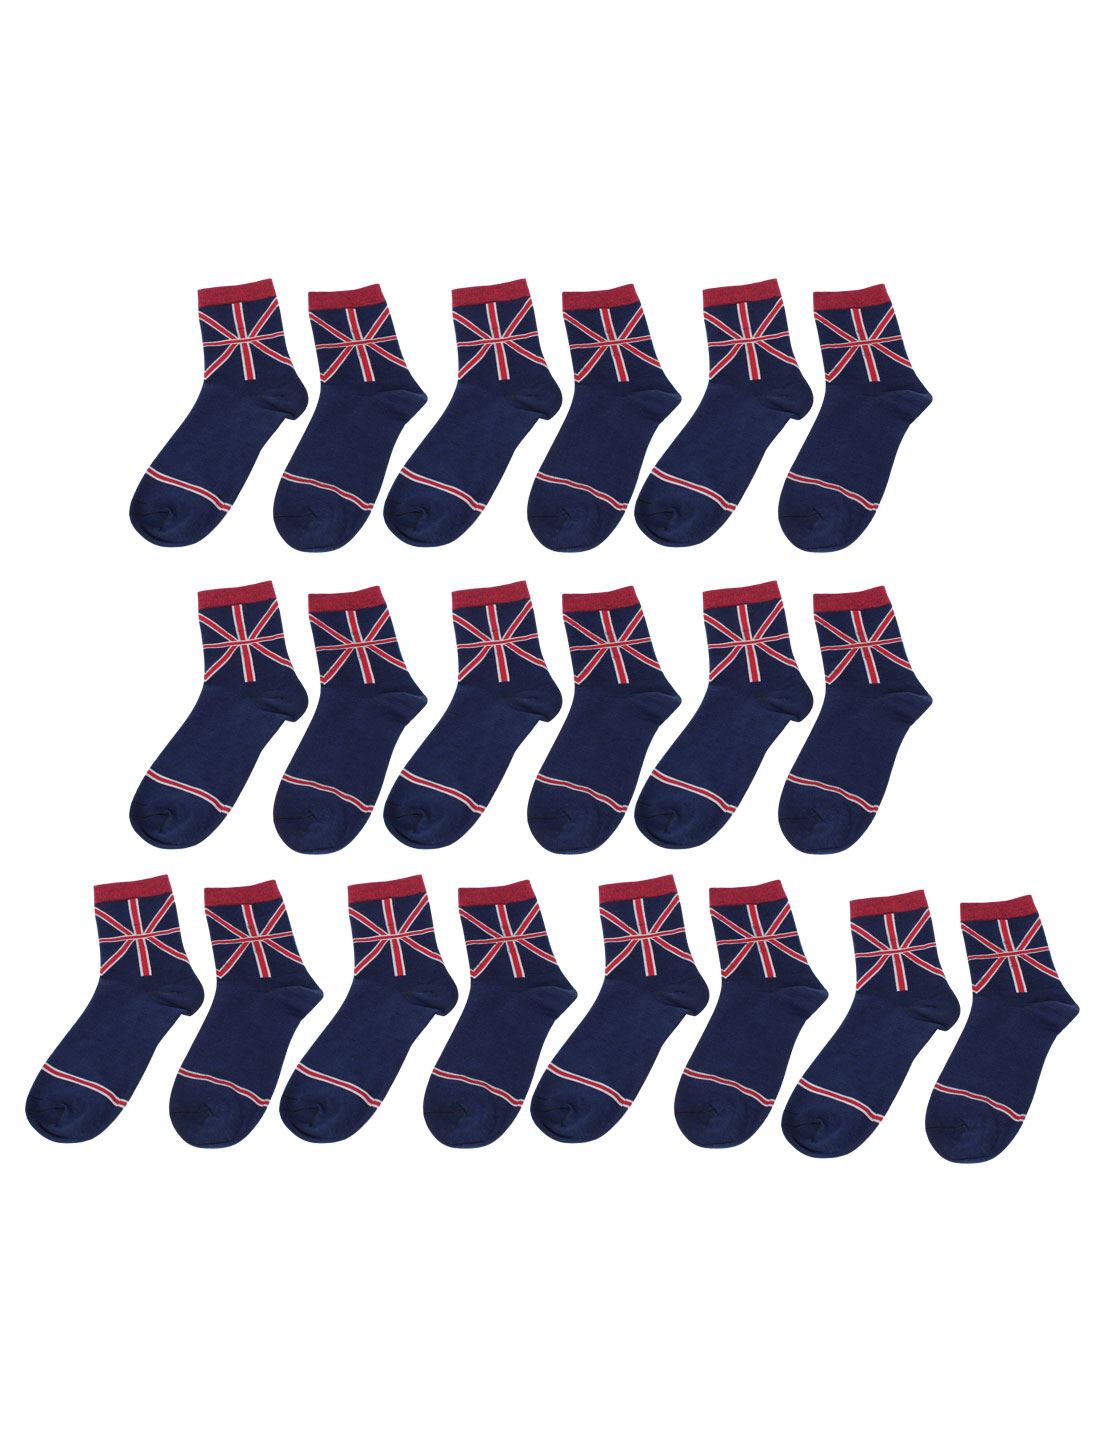 Men Red Stripes Print Ankle High Style Stretchy Sport Socks 10 Pairs